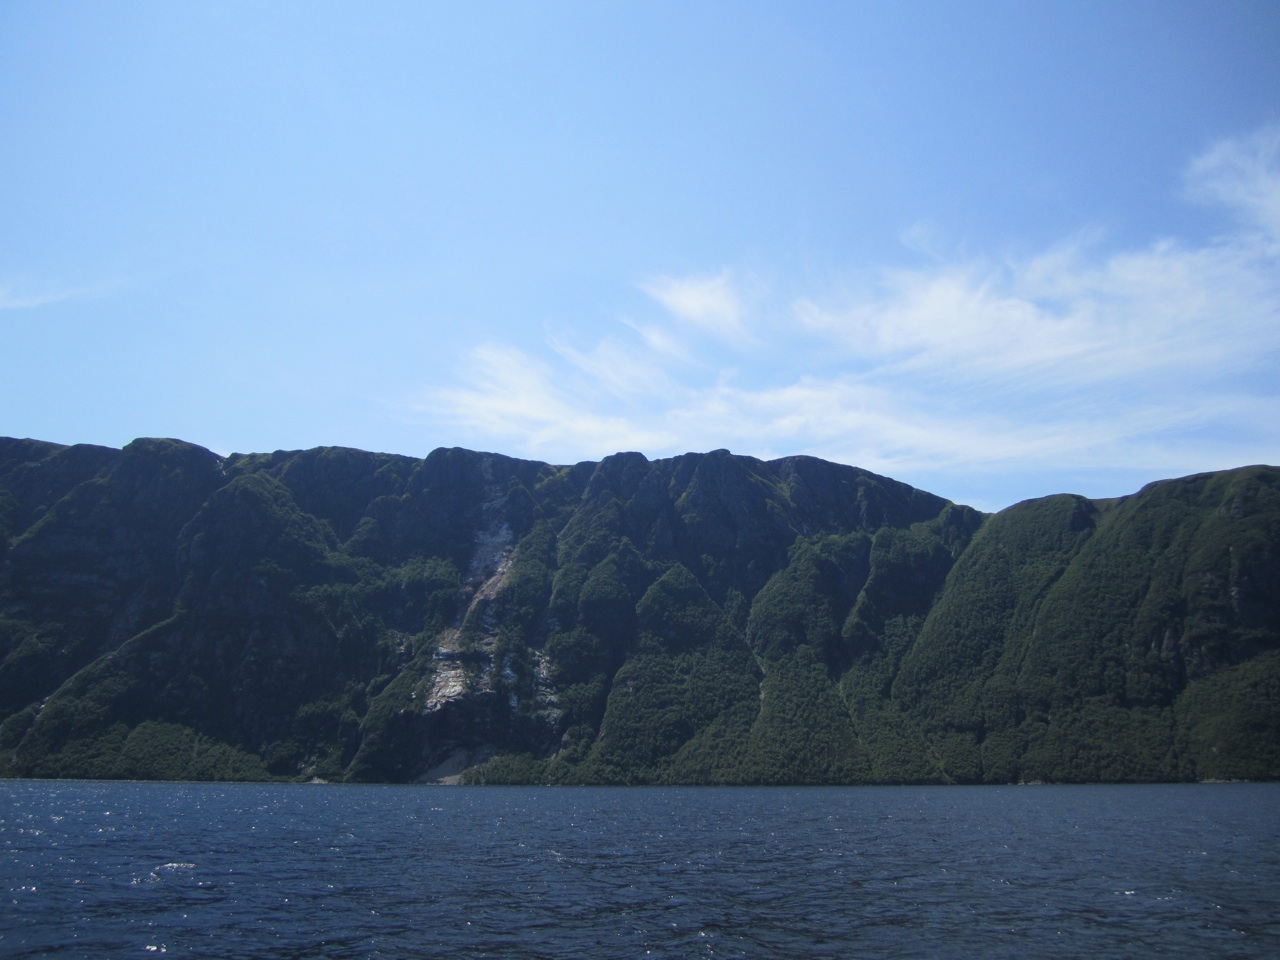 Another View Of The Fjord From The Boat